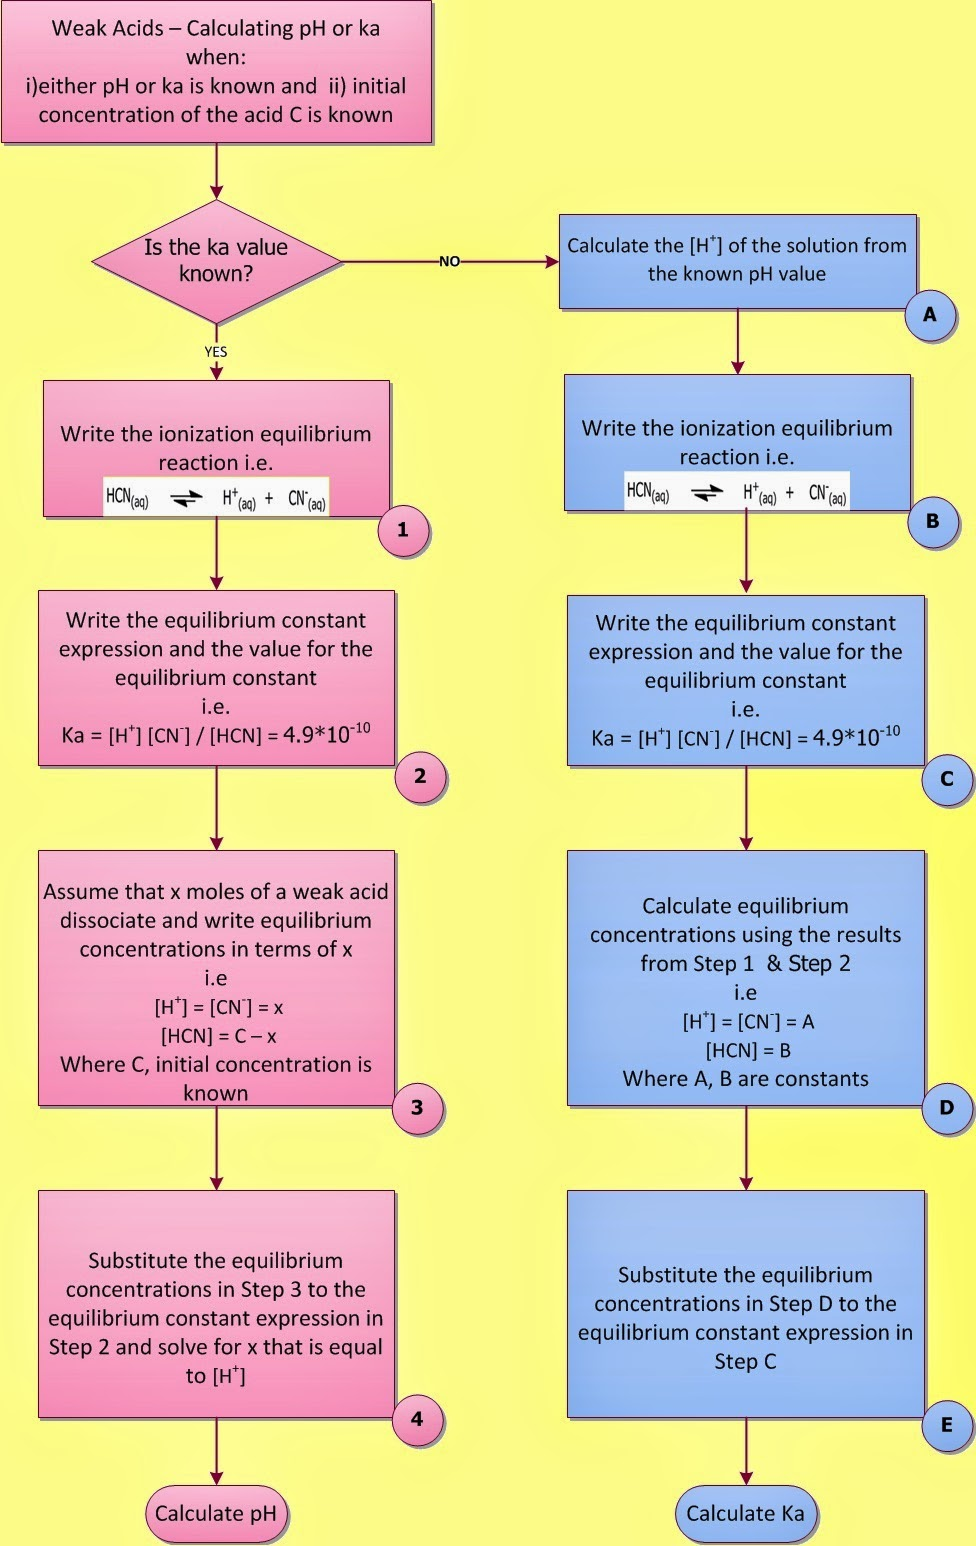 Fig. I.2: Left: Flowchart showing how to calculate the pH of a weak acid solution when ka and initial concentration C of the acid is known (1-4). Right: Flowchart showing how to calculate the ka of a weak acid solution when pH and initial concentration C of the acid is known (A to E)